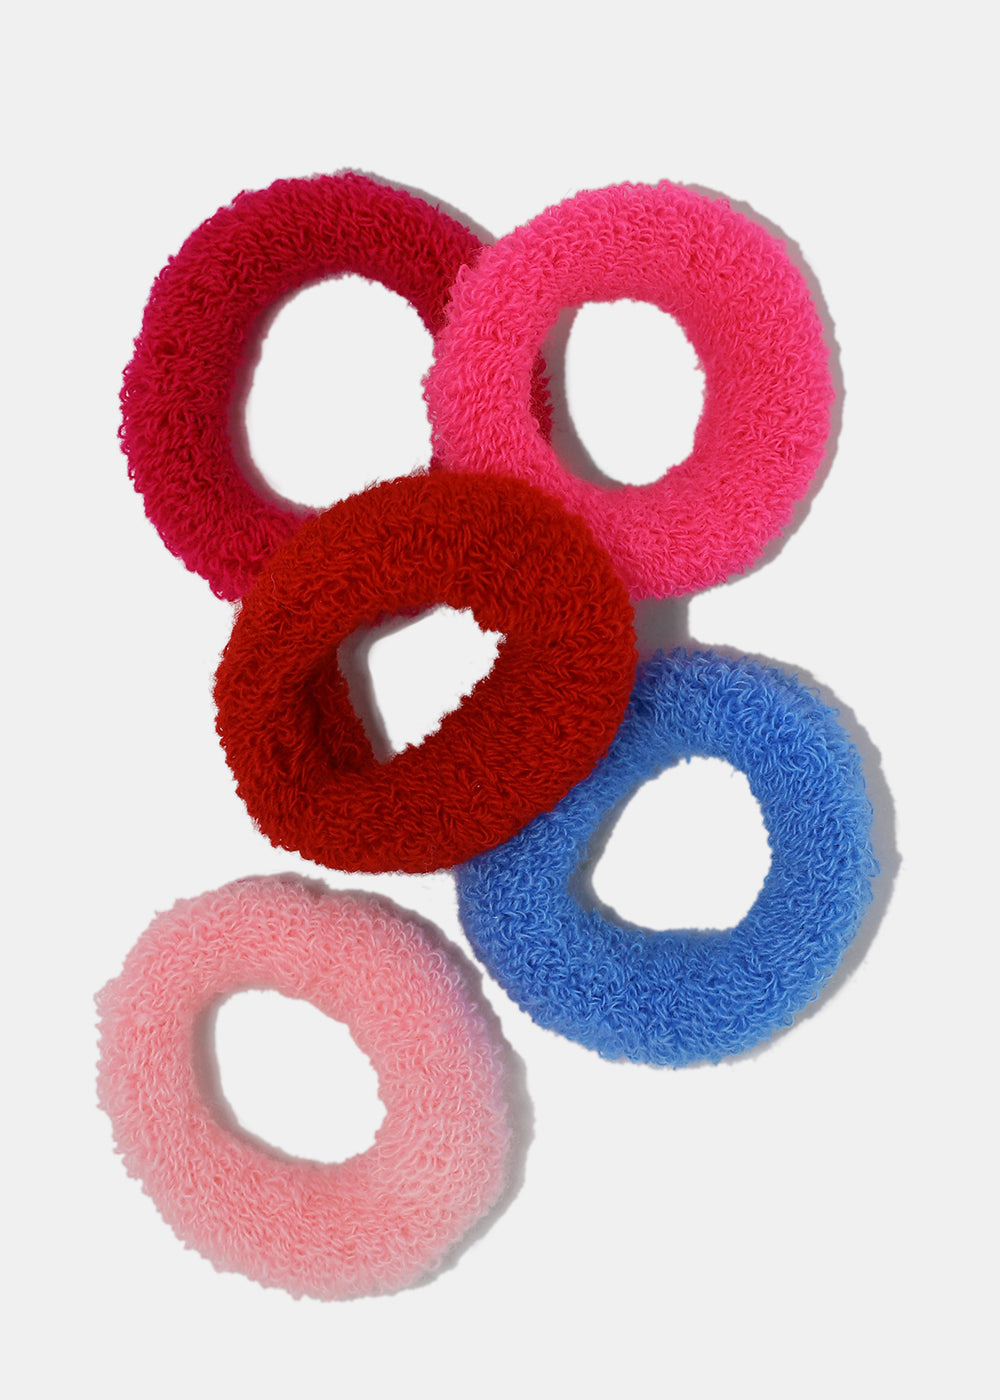 4 Piece Soft Scrunchie Set